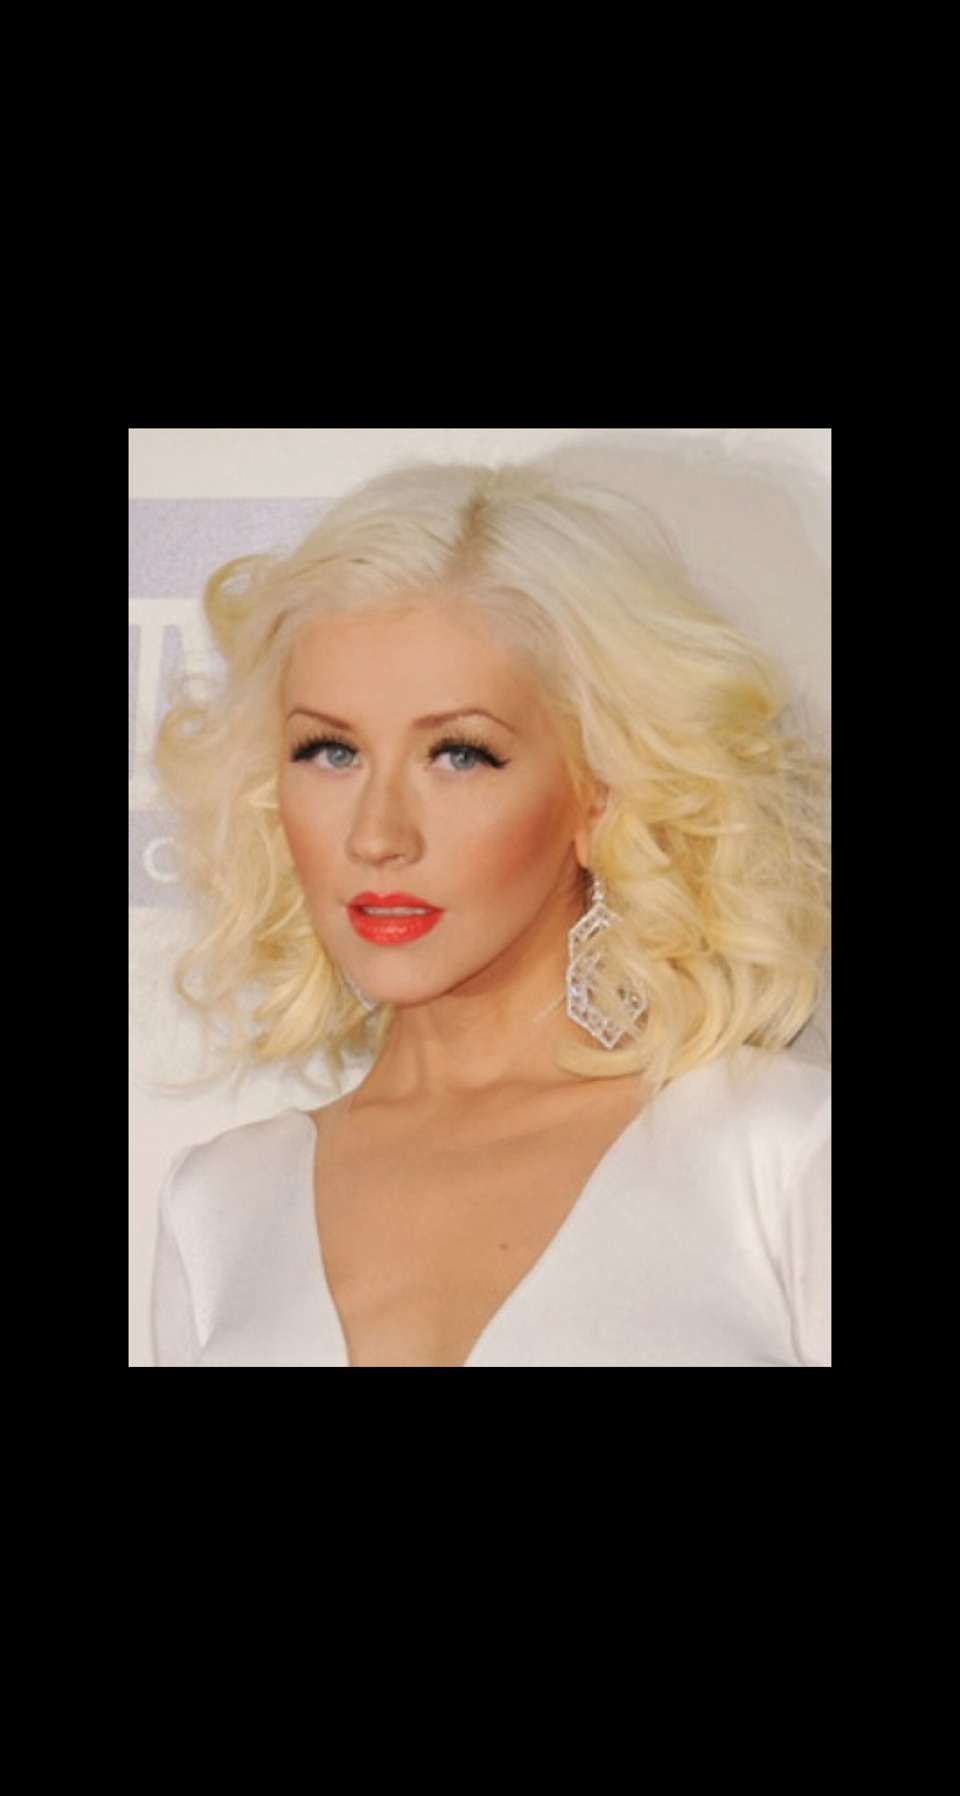 VOLUMINOUS CURLY BOB Christina Aguilera arrived at the American Music Awards with a voluminous curly bob. To achieve this look curl hair sideways inward rather than down. Tease as you go with volume spray.